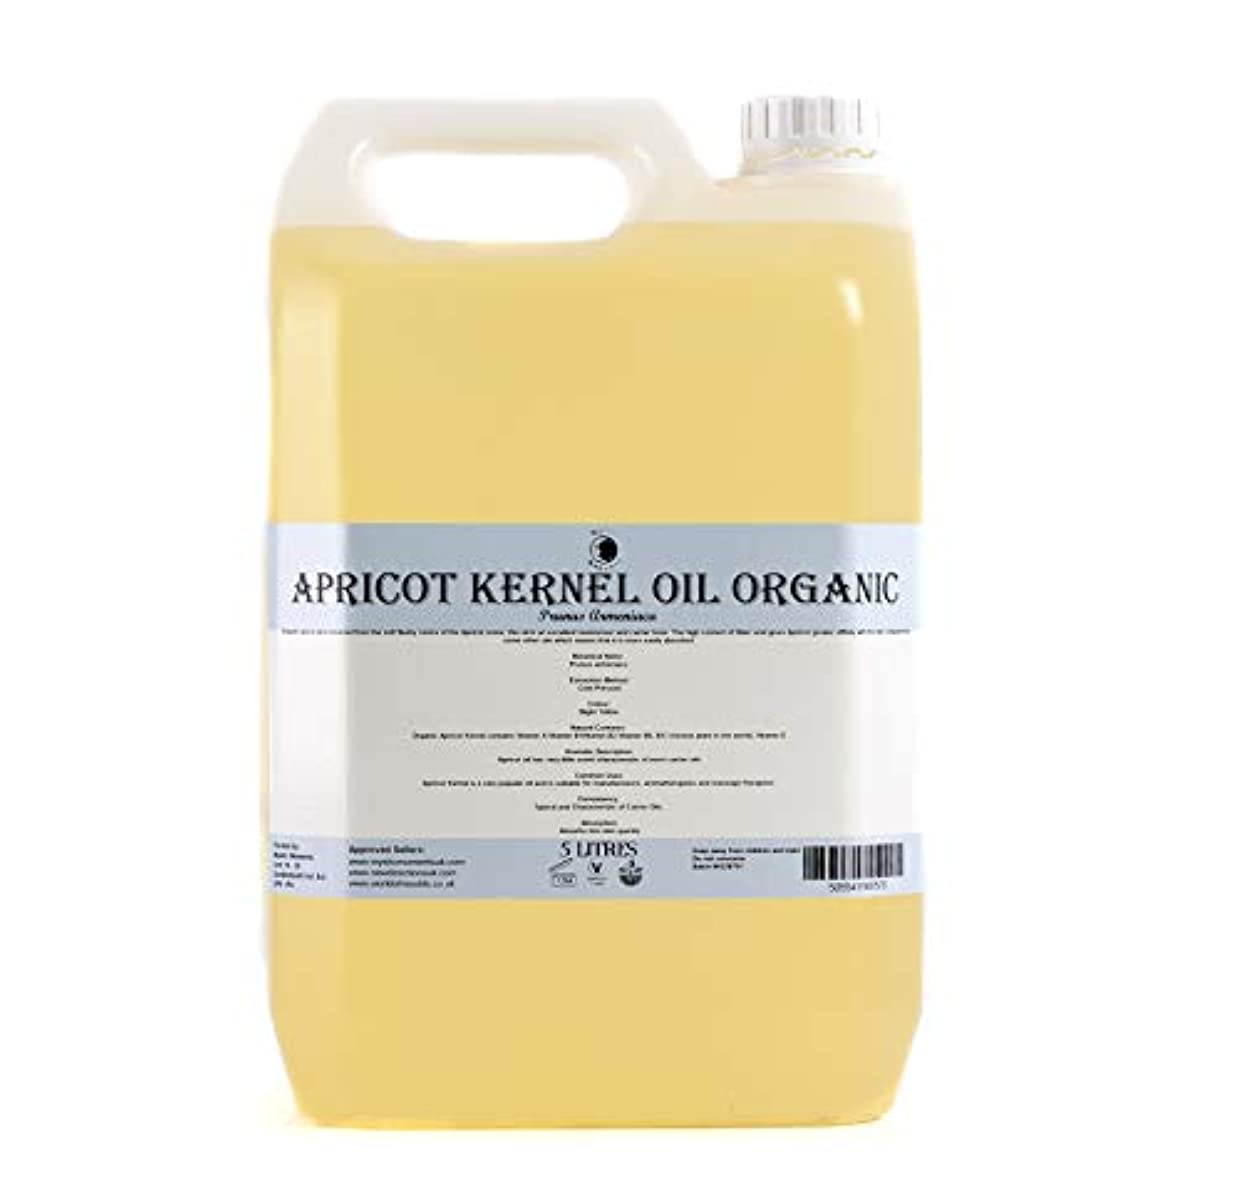 可動式ダメージ葉巻Mystic Moments | Apricot Kernel Organic Carrier Oil - 5 Litres - 100% Pure